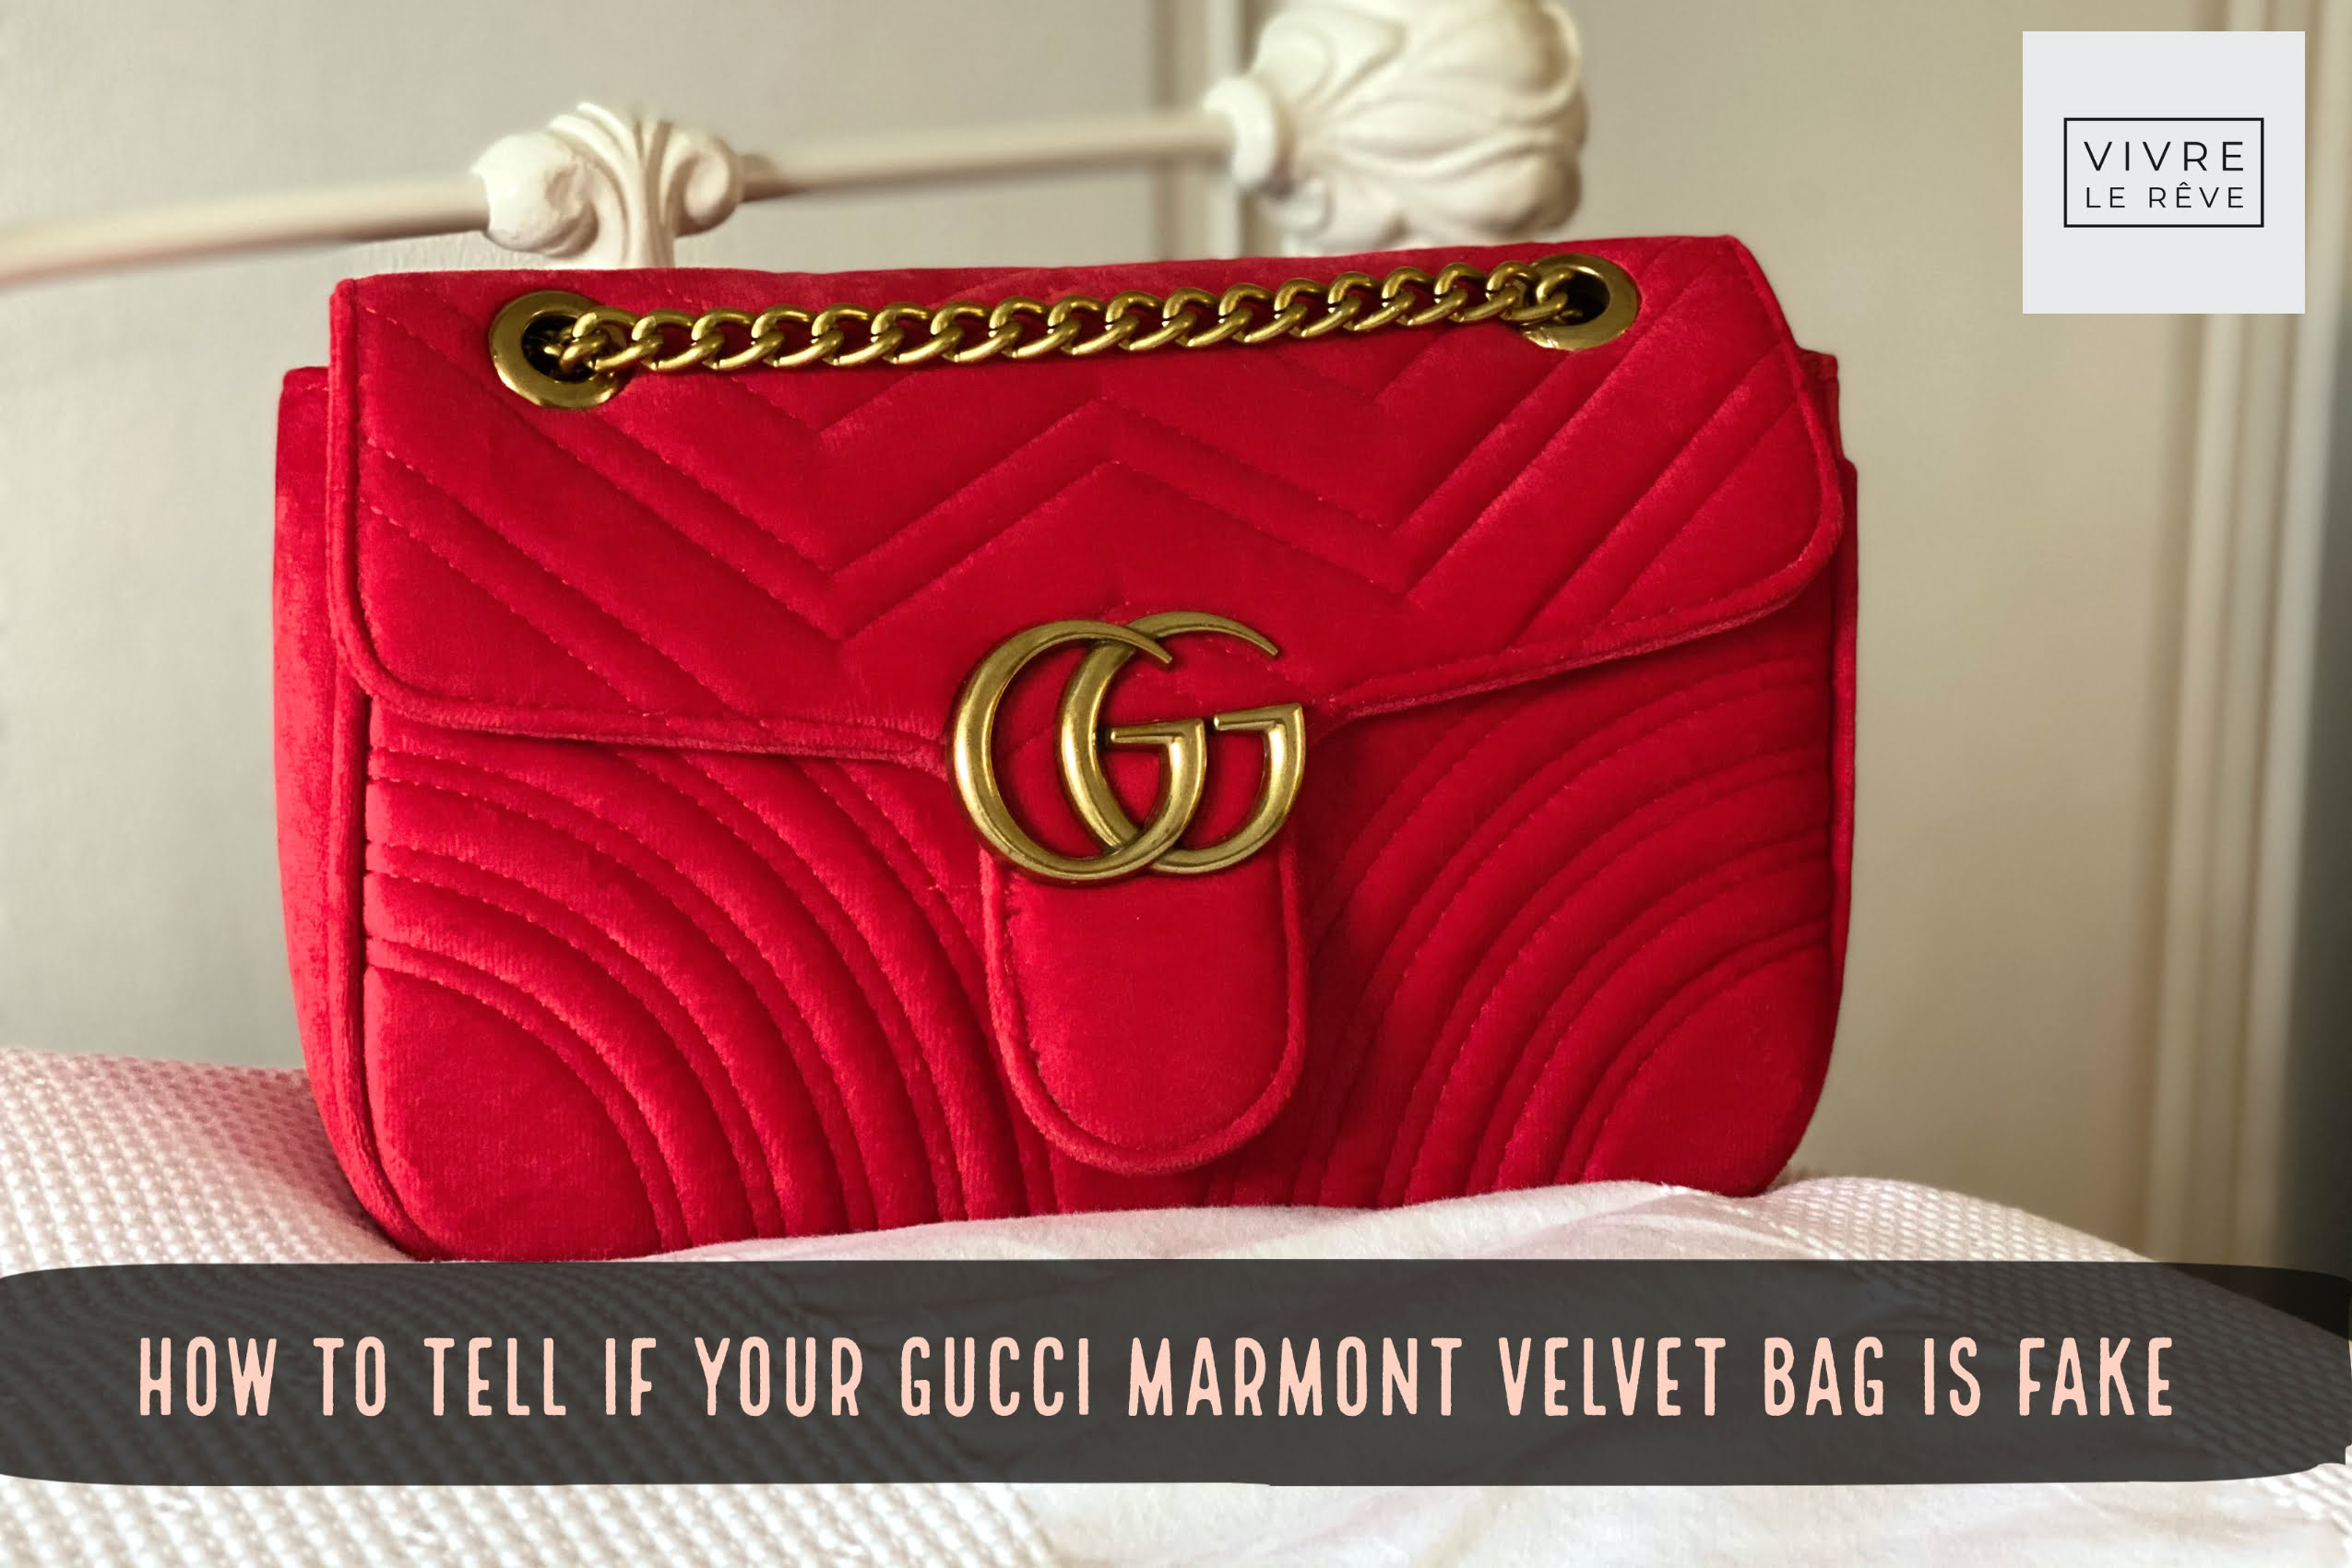 How To Tell If Your Gucci Marmont Velvet Bag is Fake